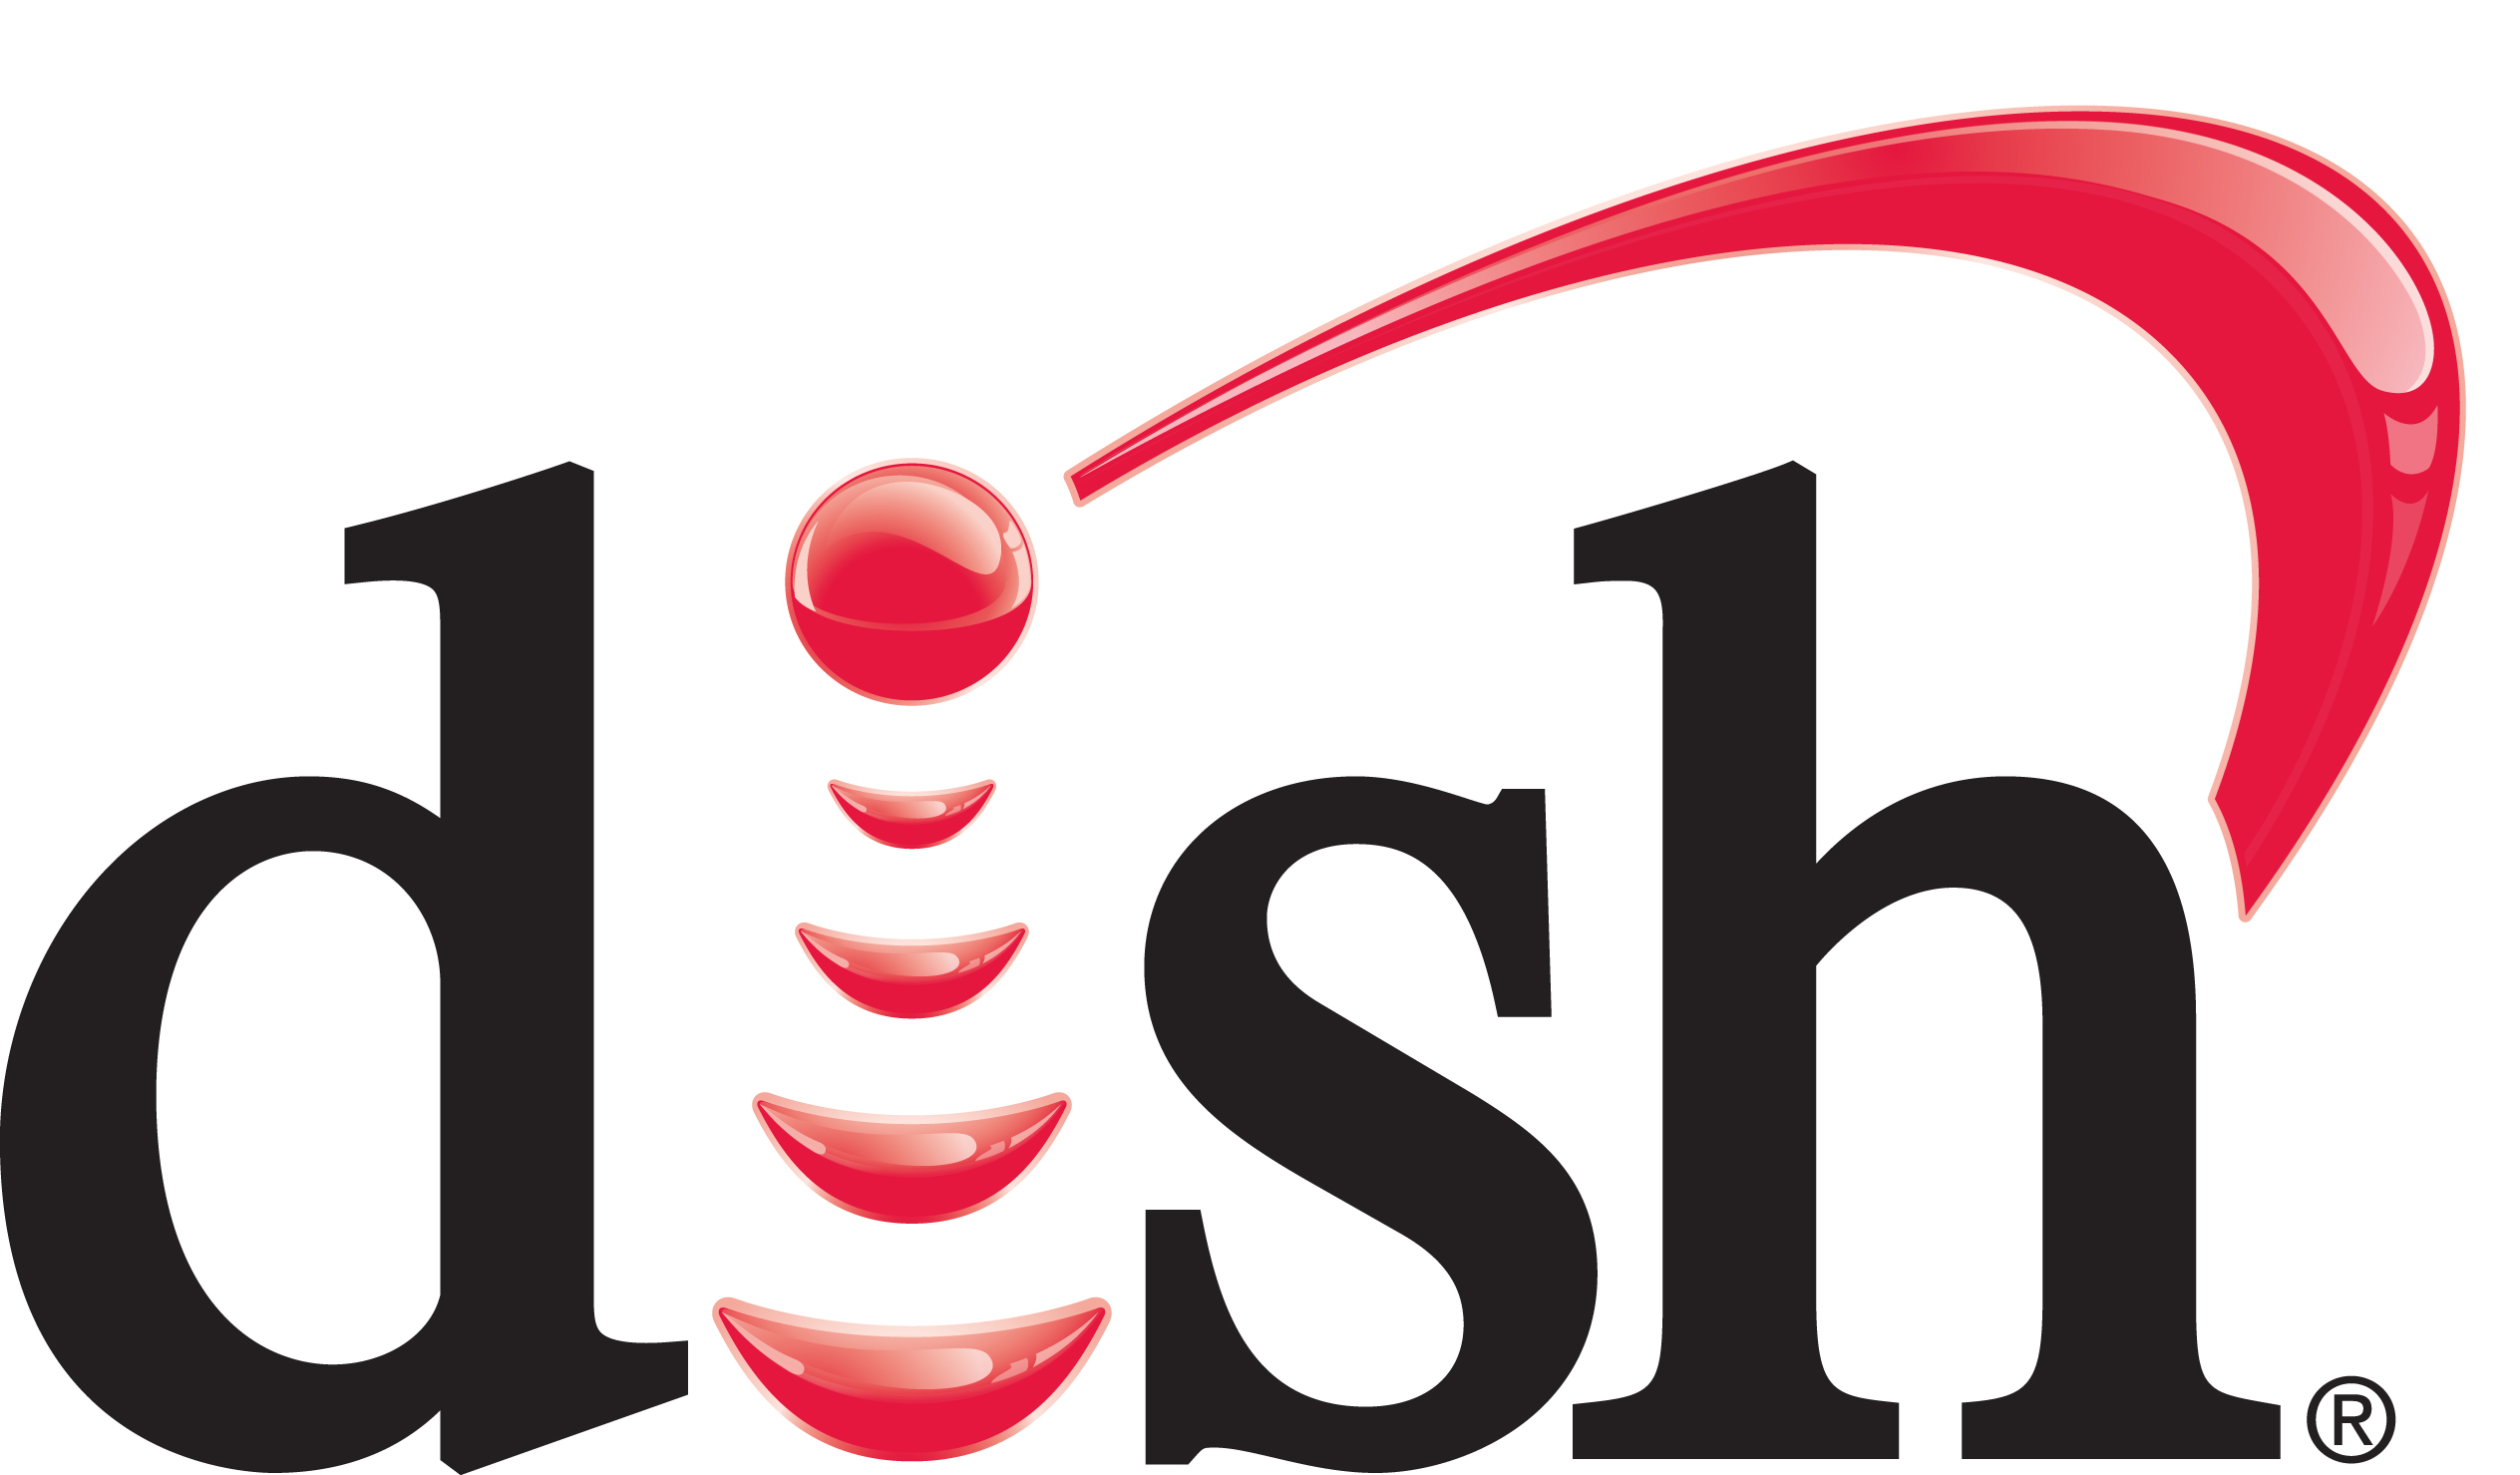 Washington DISH customers can now claim settlement benefits through live website